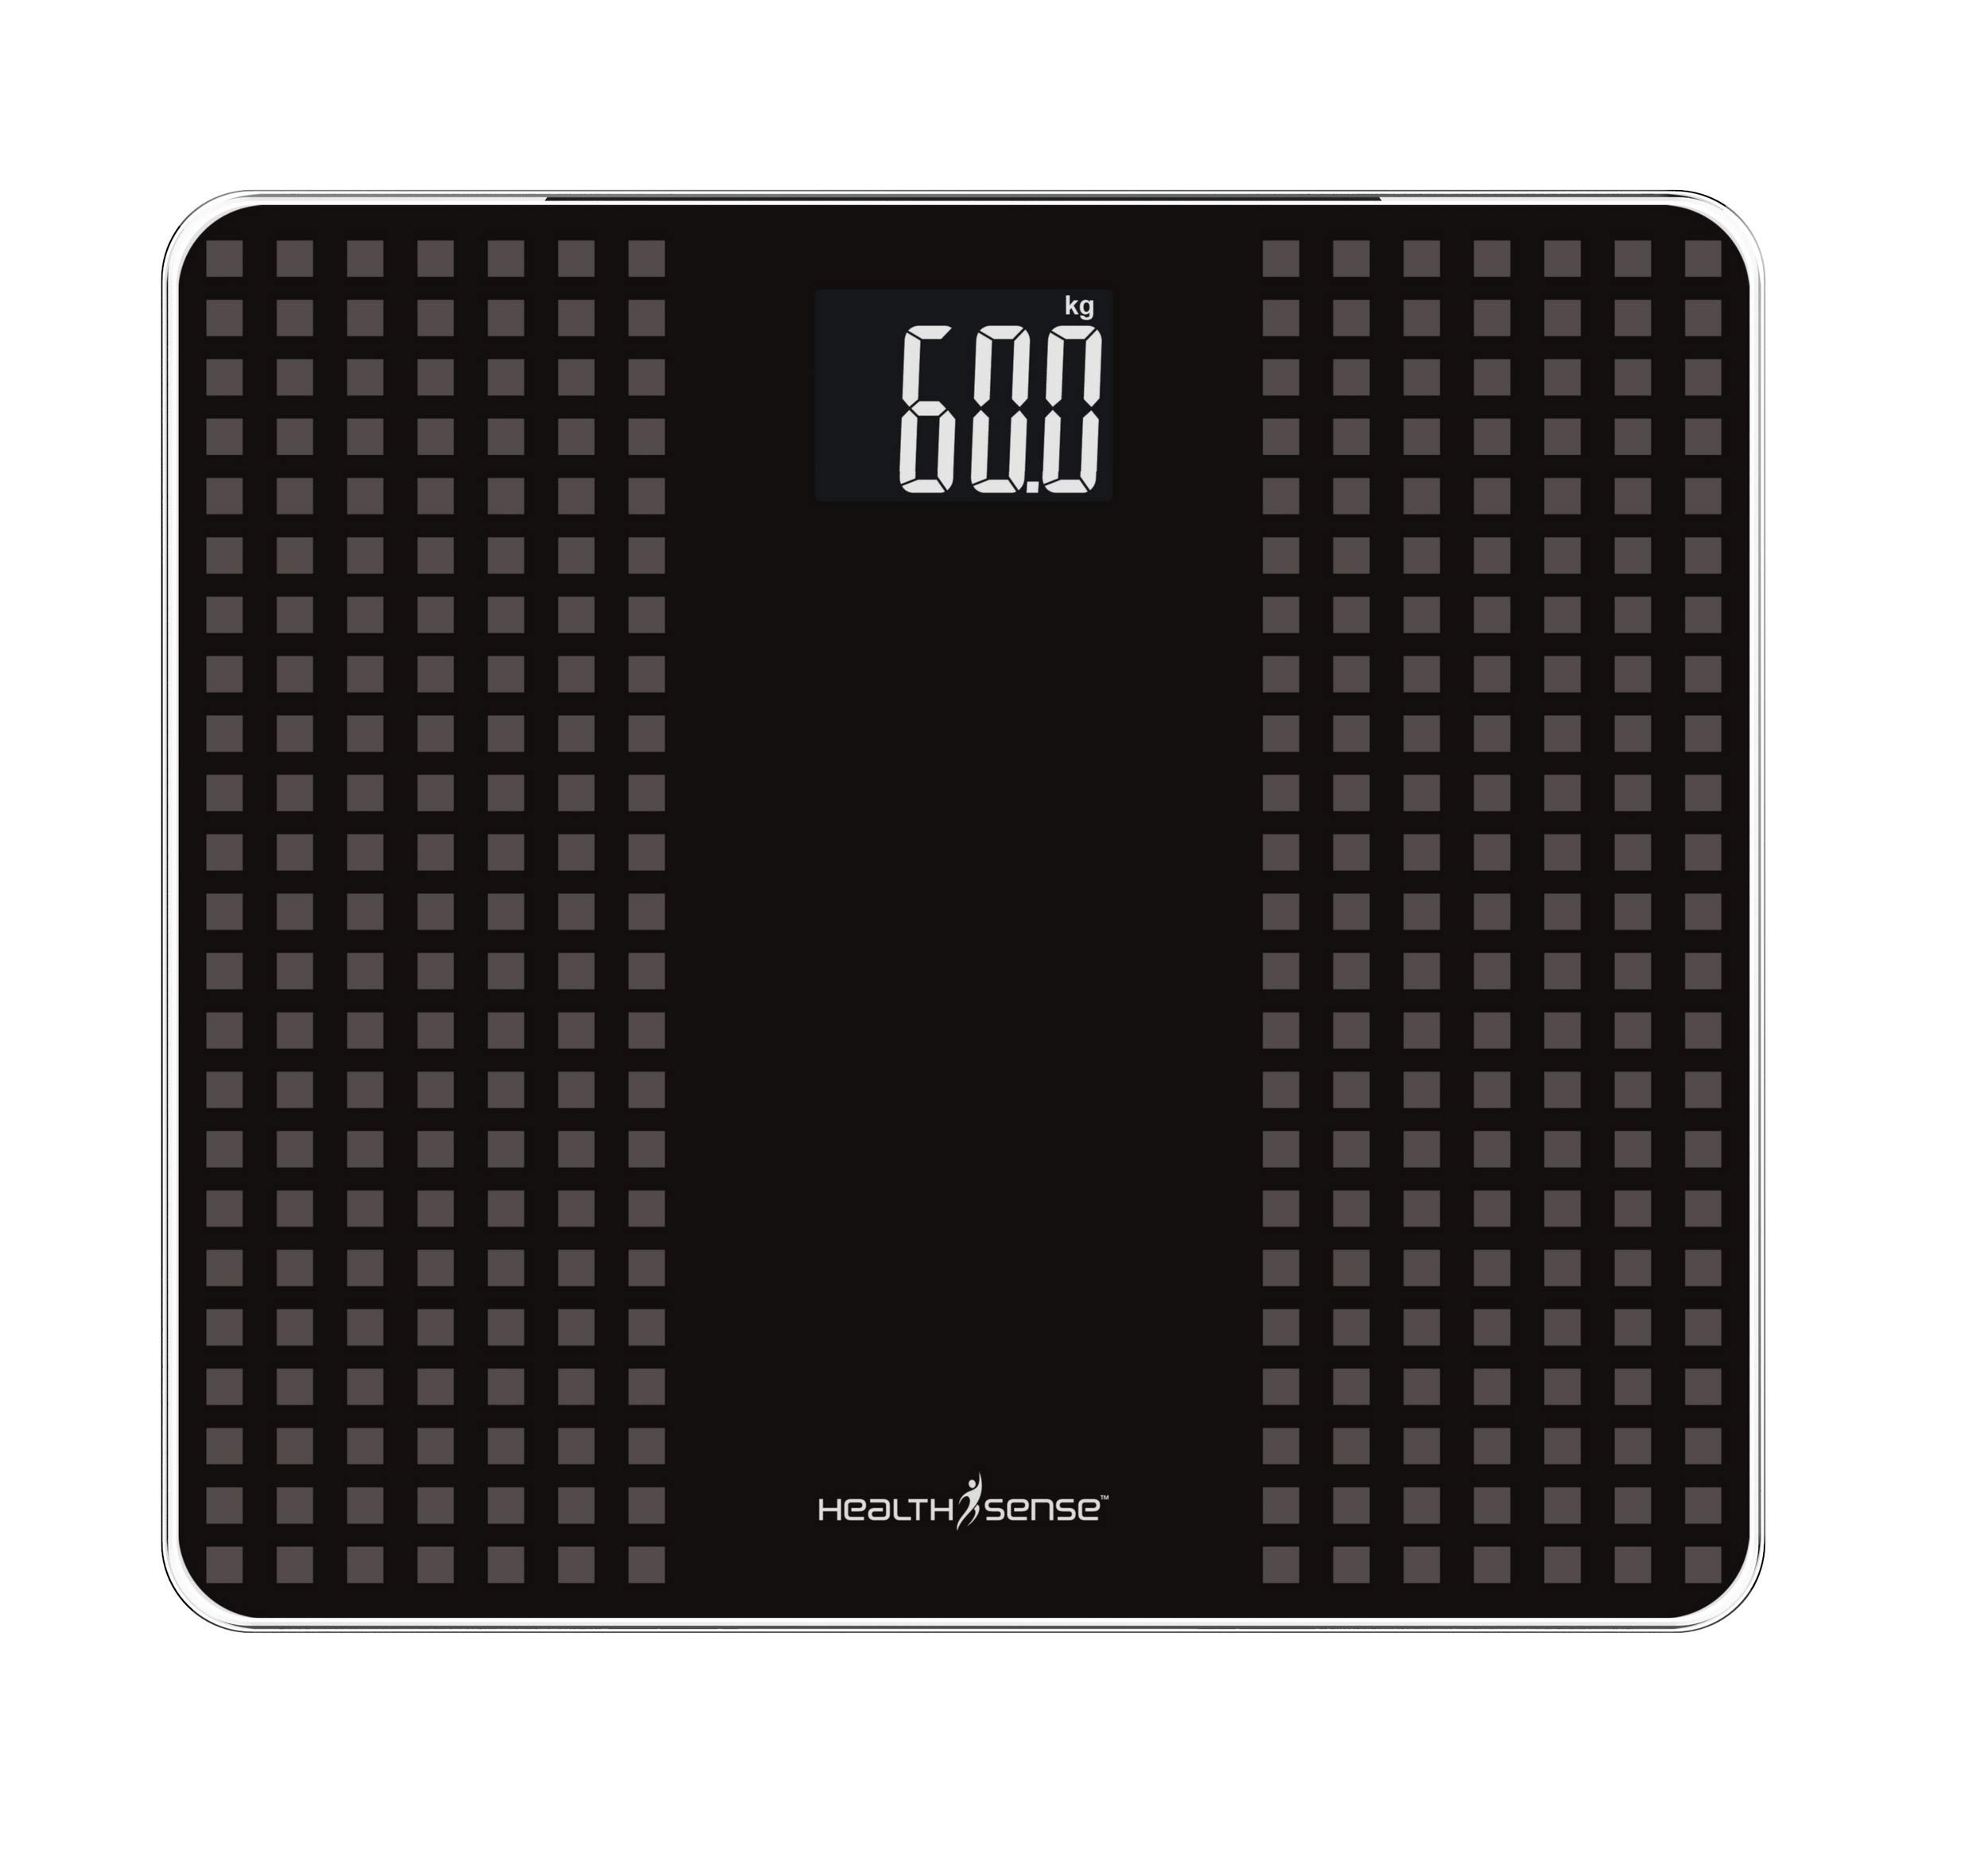 Health Sense PS 117 Glass Top Digital Personal Body Weighing Scale (Black/Gray) product image